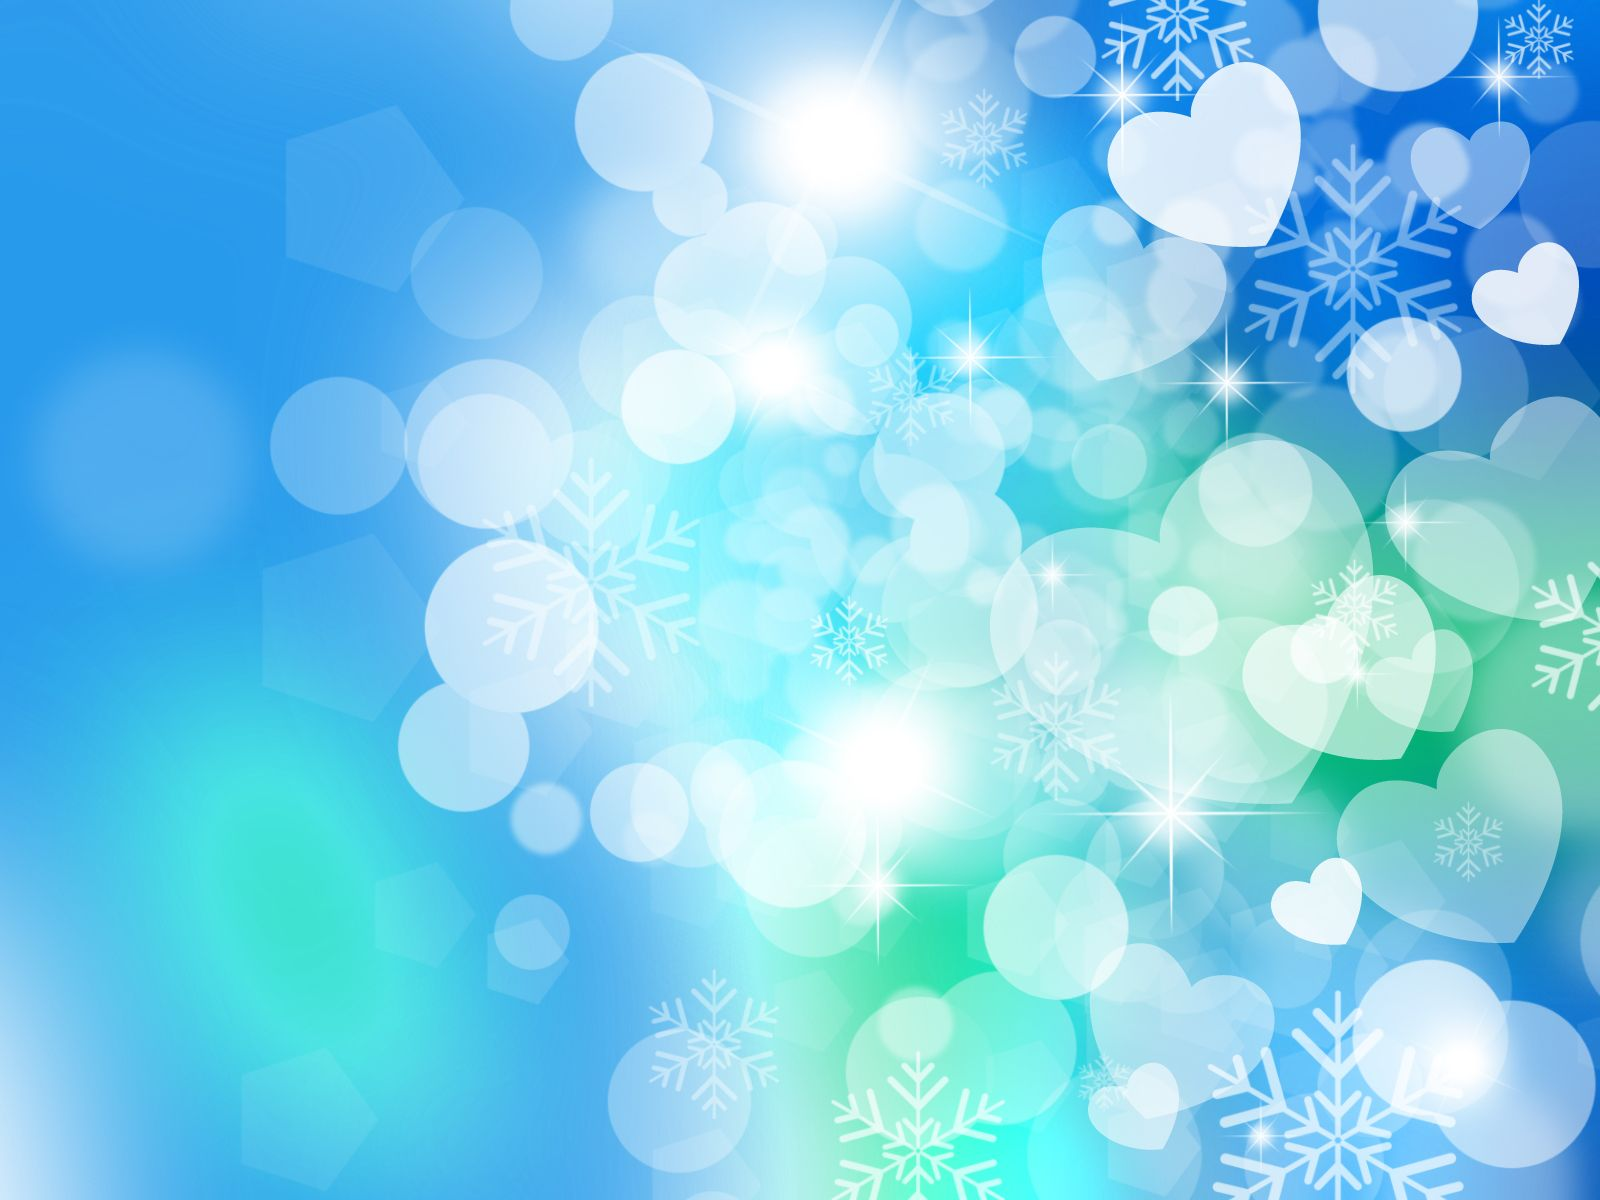 Christmas Background Images For Photoshop.Pin By Claudine Owens On Bubbles Love Backgrounds